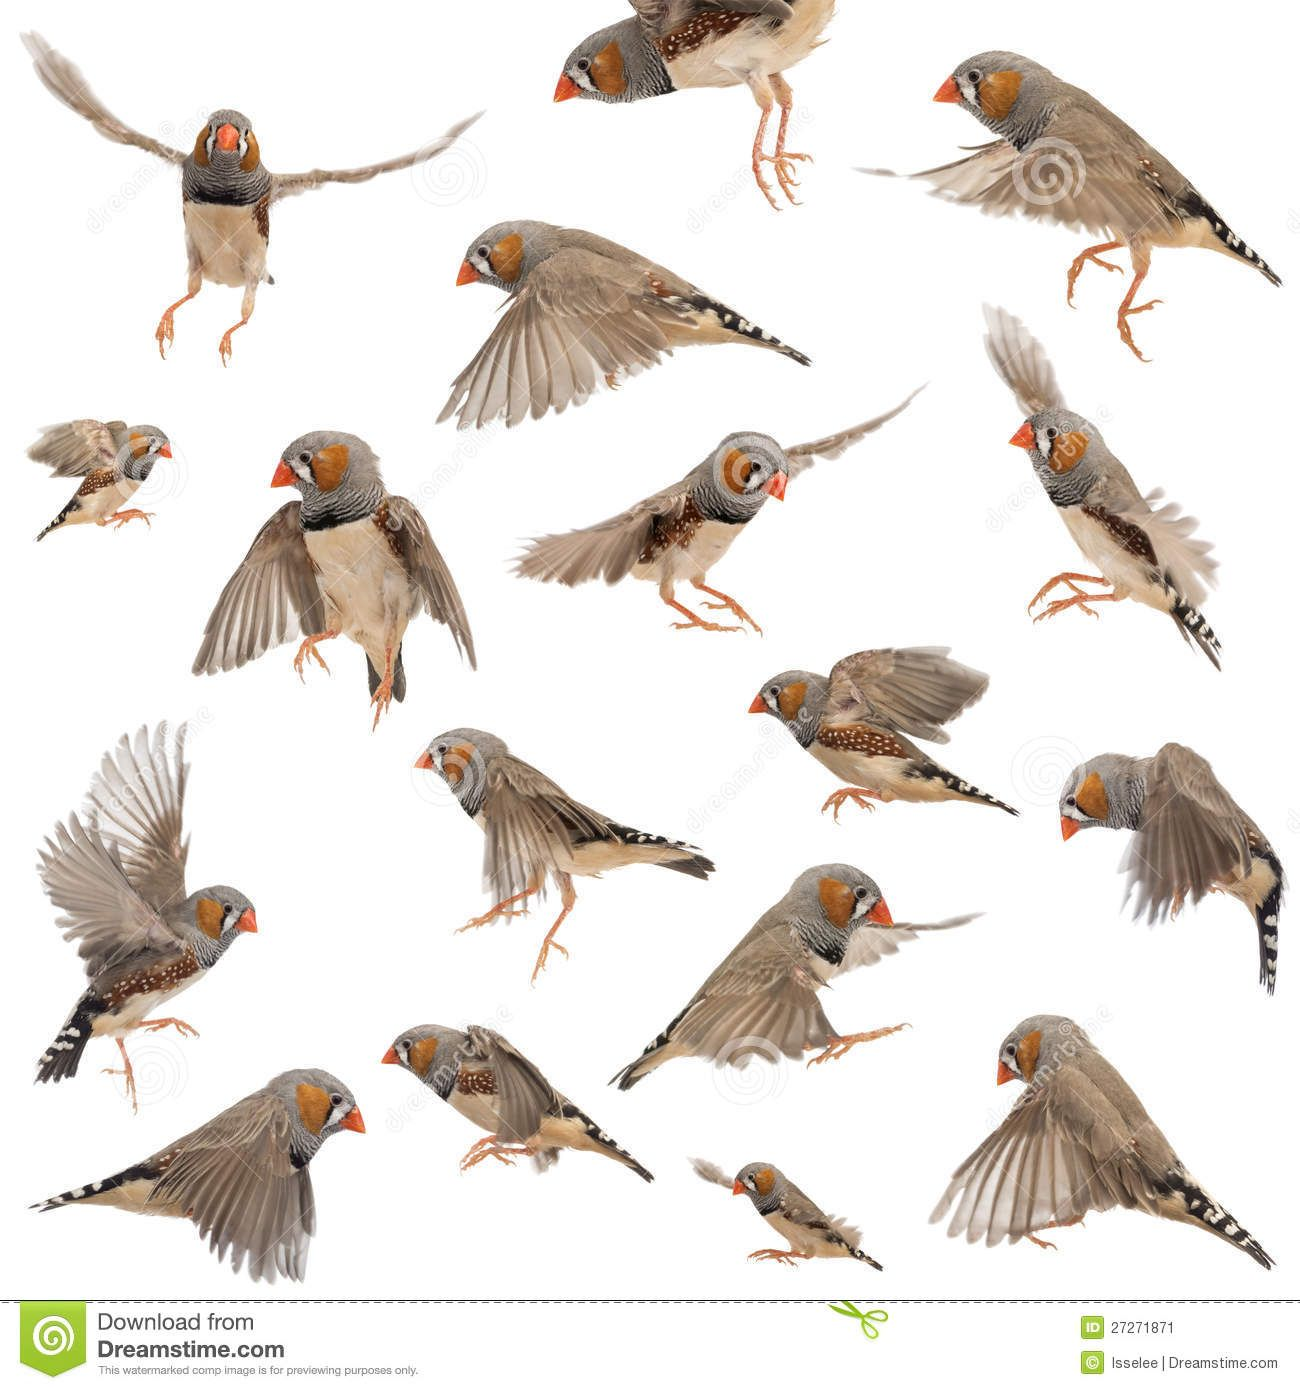 http://thumbs.dreamstime.com/z/composition-zebra-finch-flying-27271871.jpg